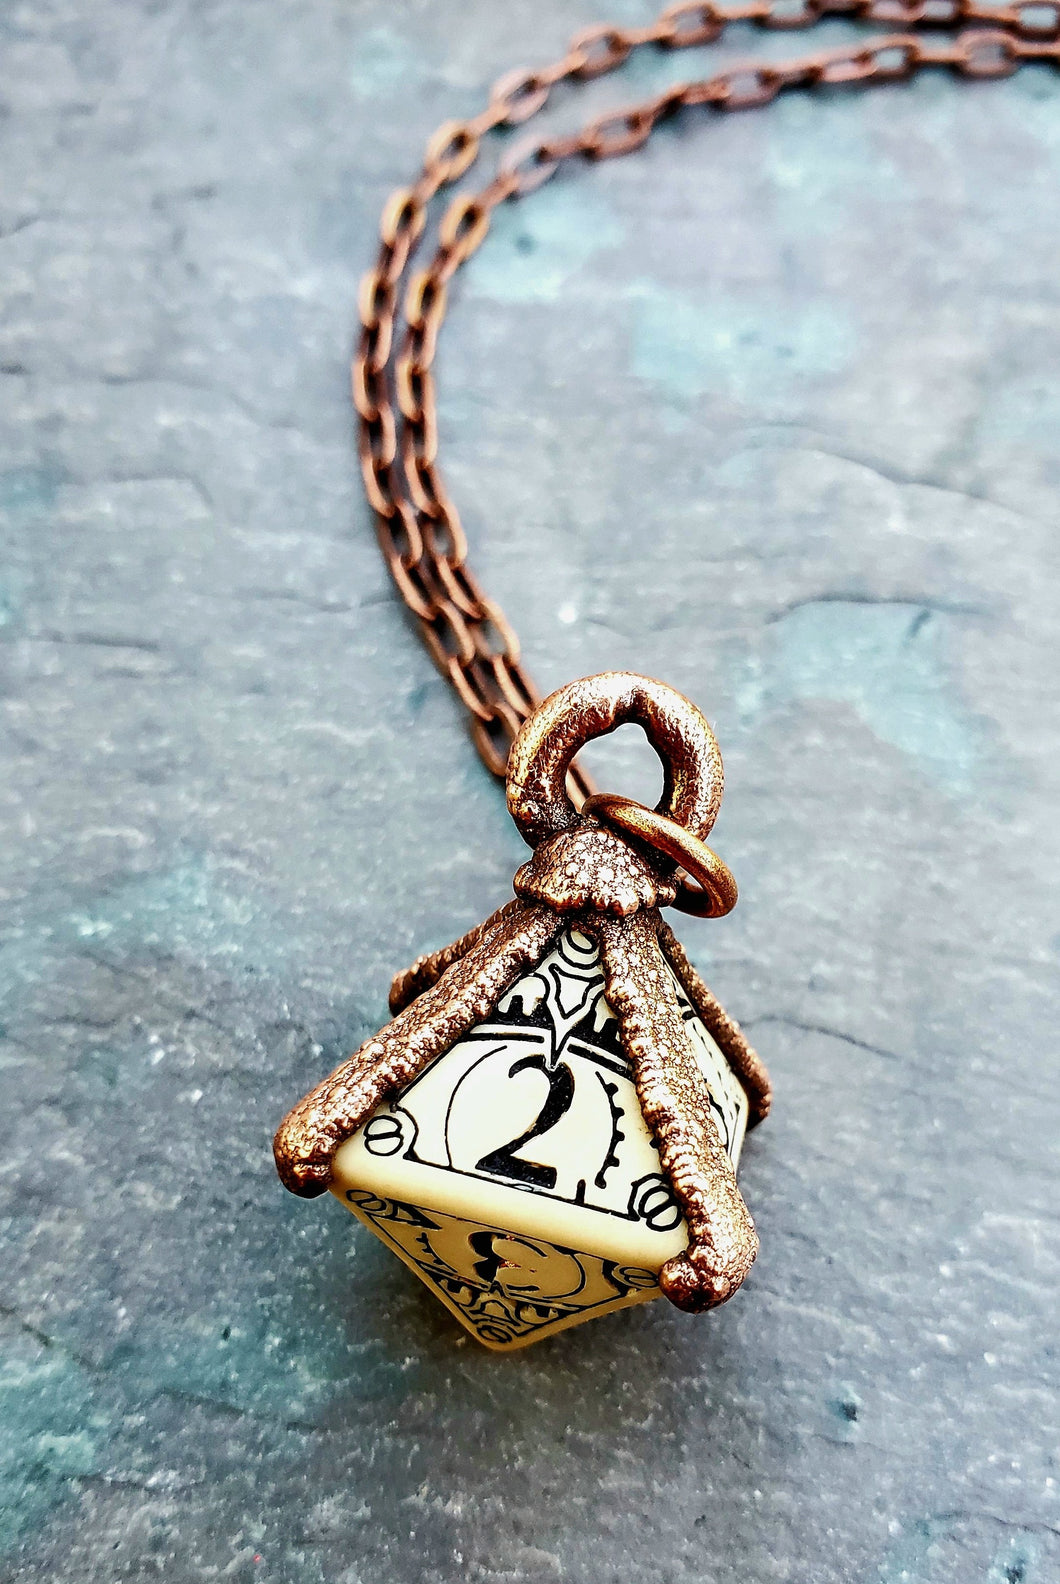 Otherworlds D8  Gaming Die Dice Antiqued Copper Necklace